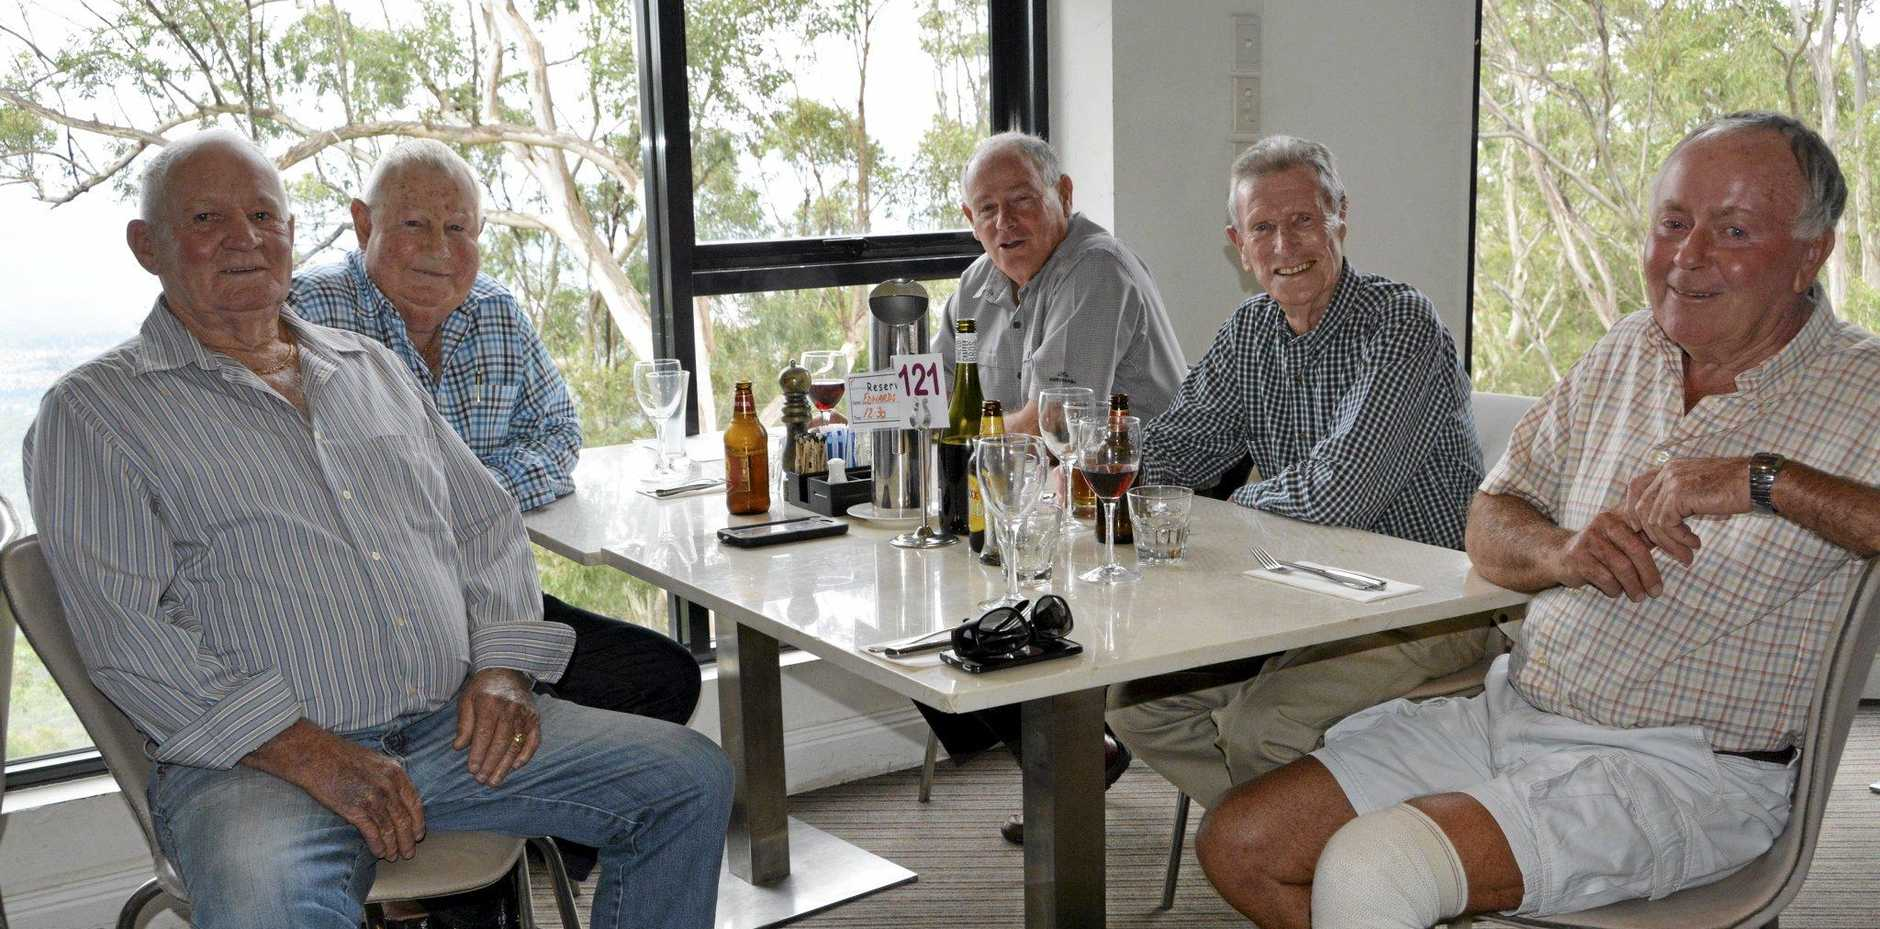 GREAT MATES: Enjoying their April lunch are members of the Old Farts Club (from left) Tom Sweeting, Reece Edwards, Ross Miller, Tom Bence and Steve Quinn.